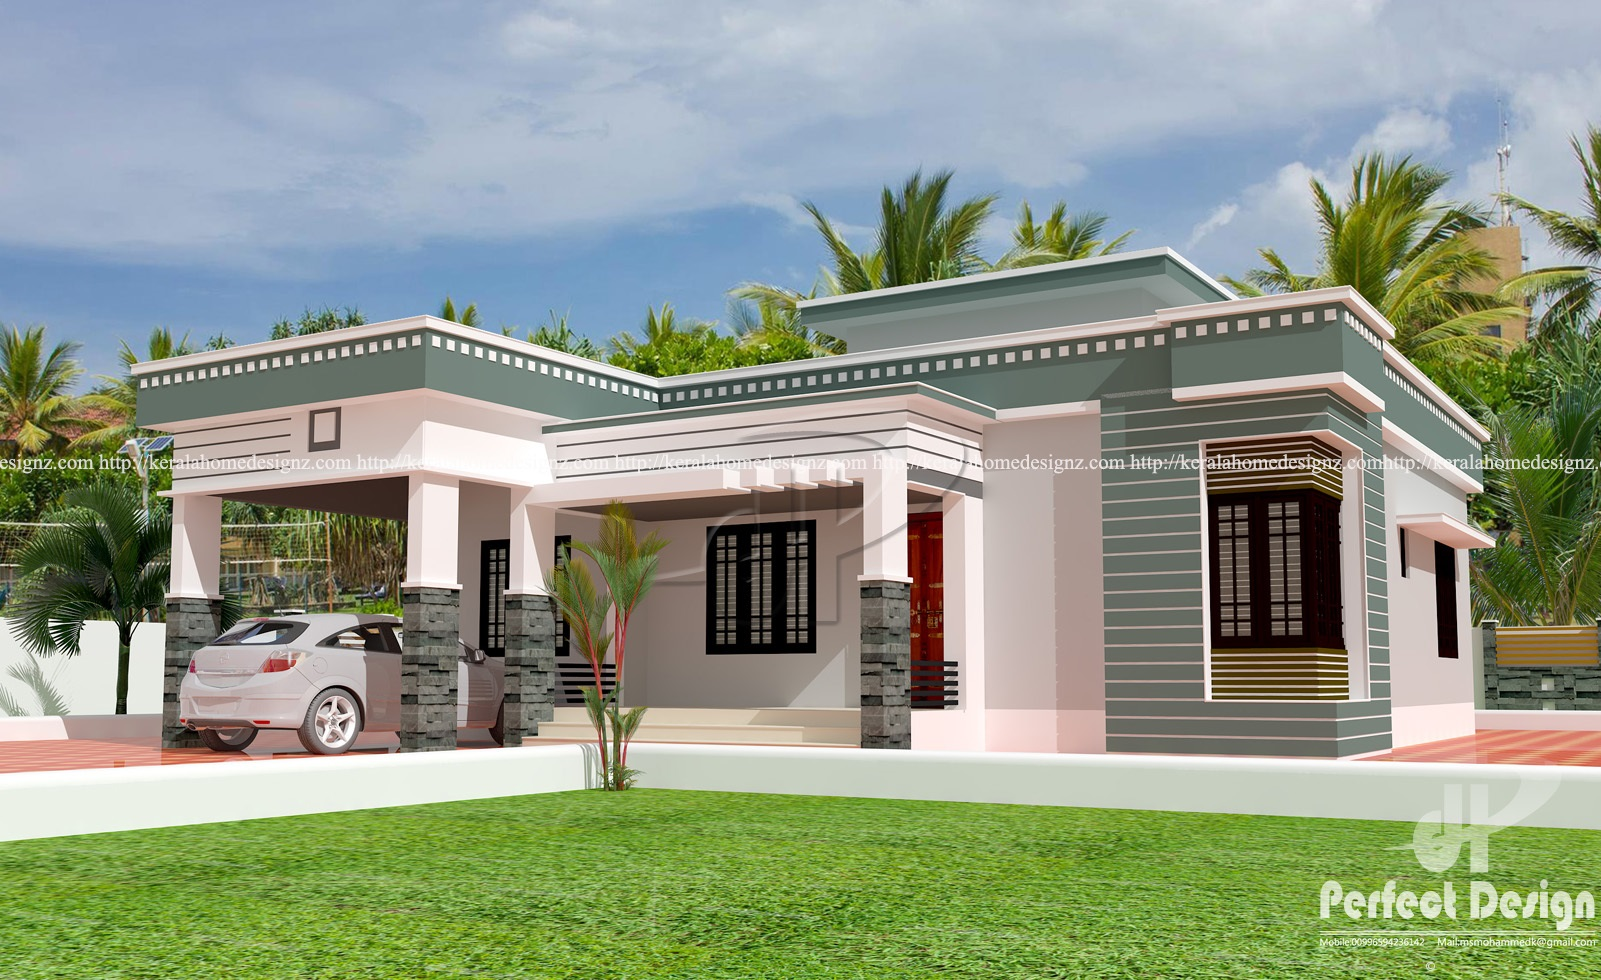 3 bed room modern single floor home kerala home design for Single floor house